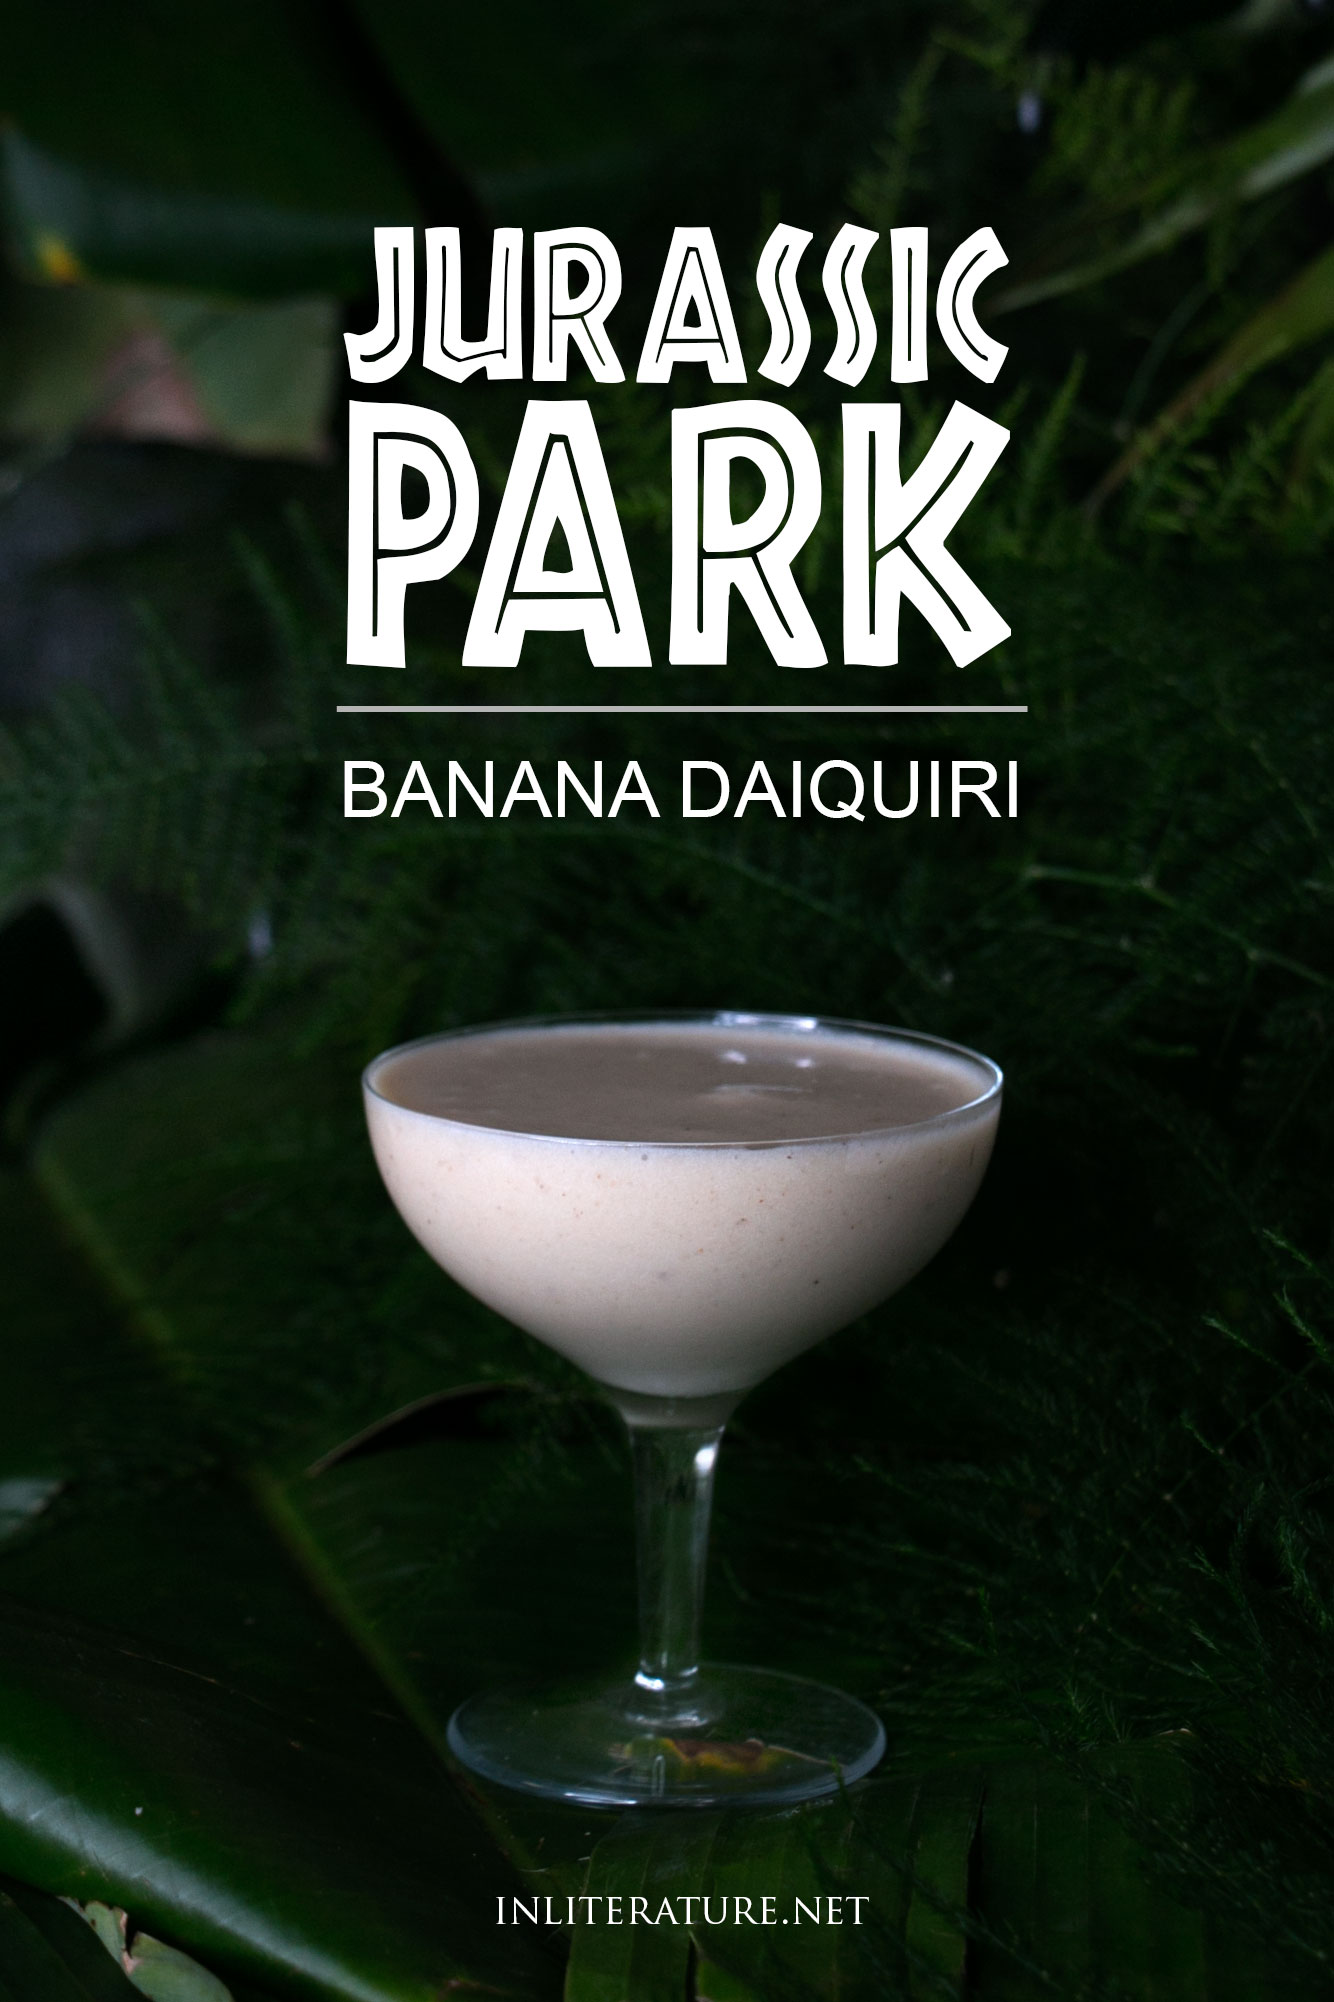 Whip up this easy banana daiquiri for your Jurassic Park party, inspired by the original novel.